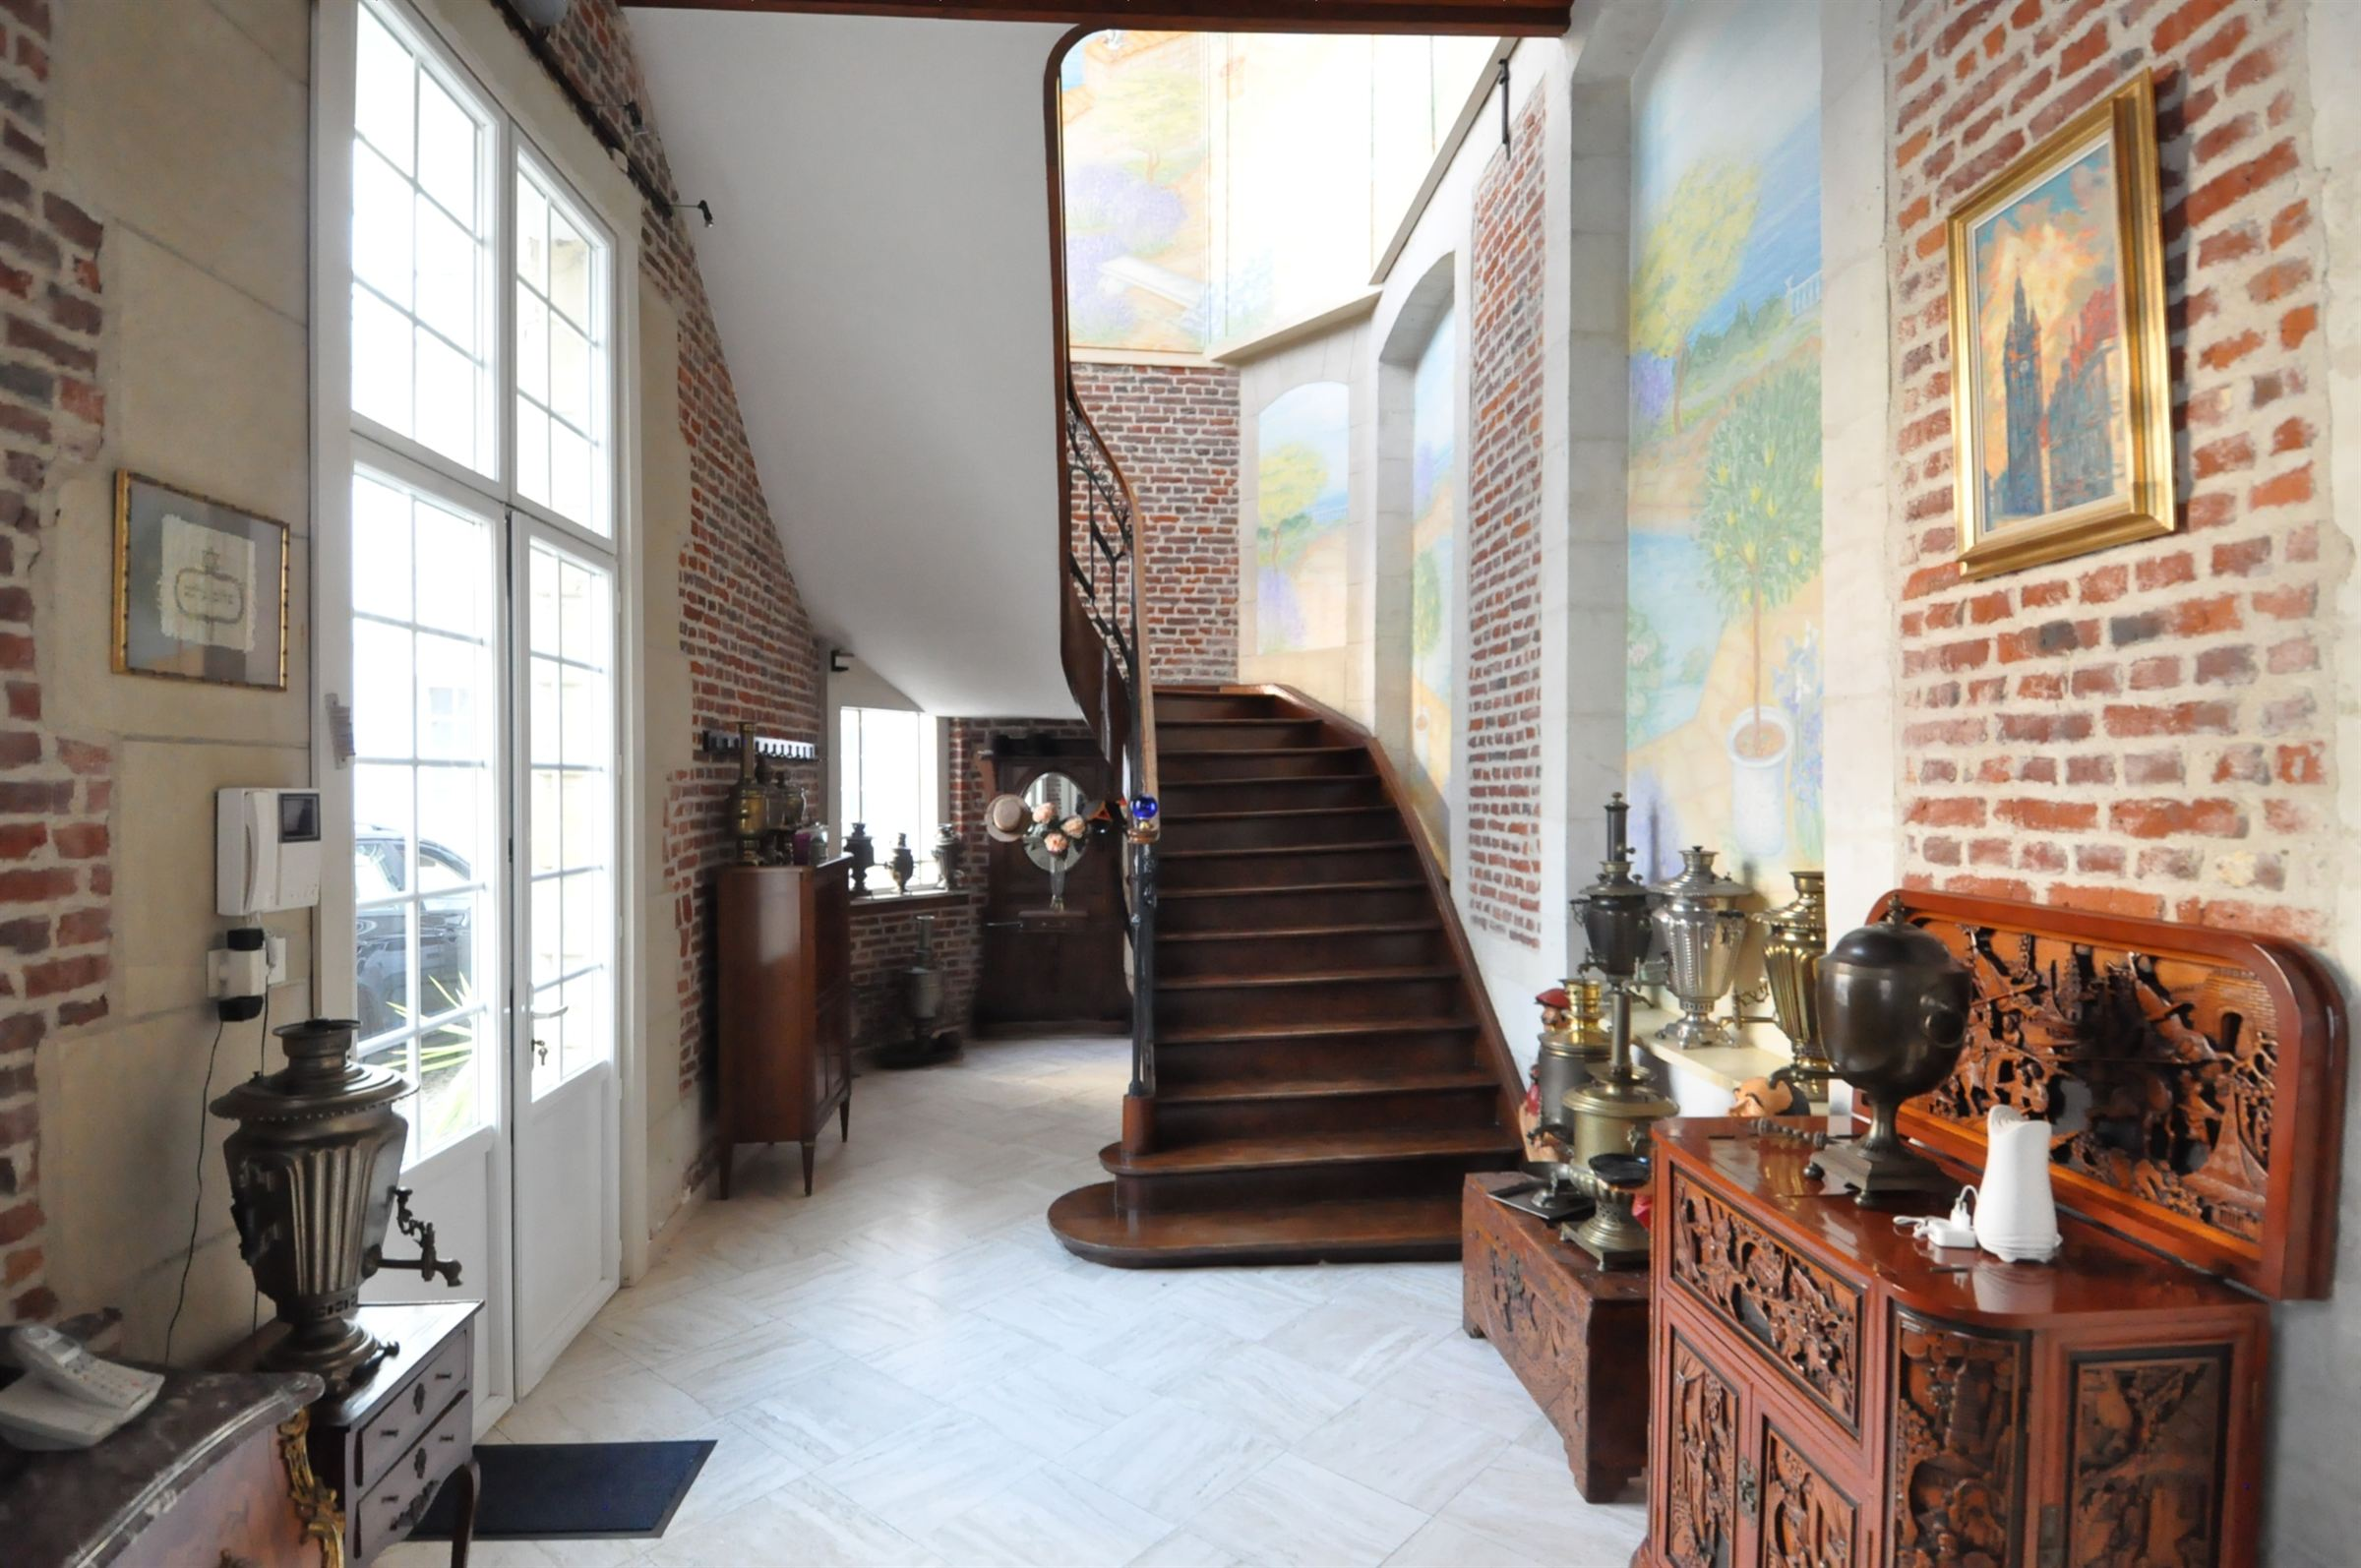 Property For Sale at DOUAI Center, Mansion 1,800 m² hab. 13 hp